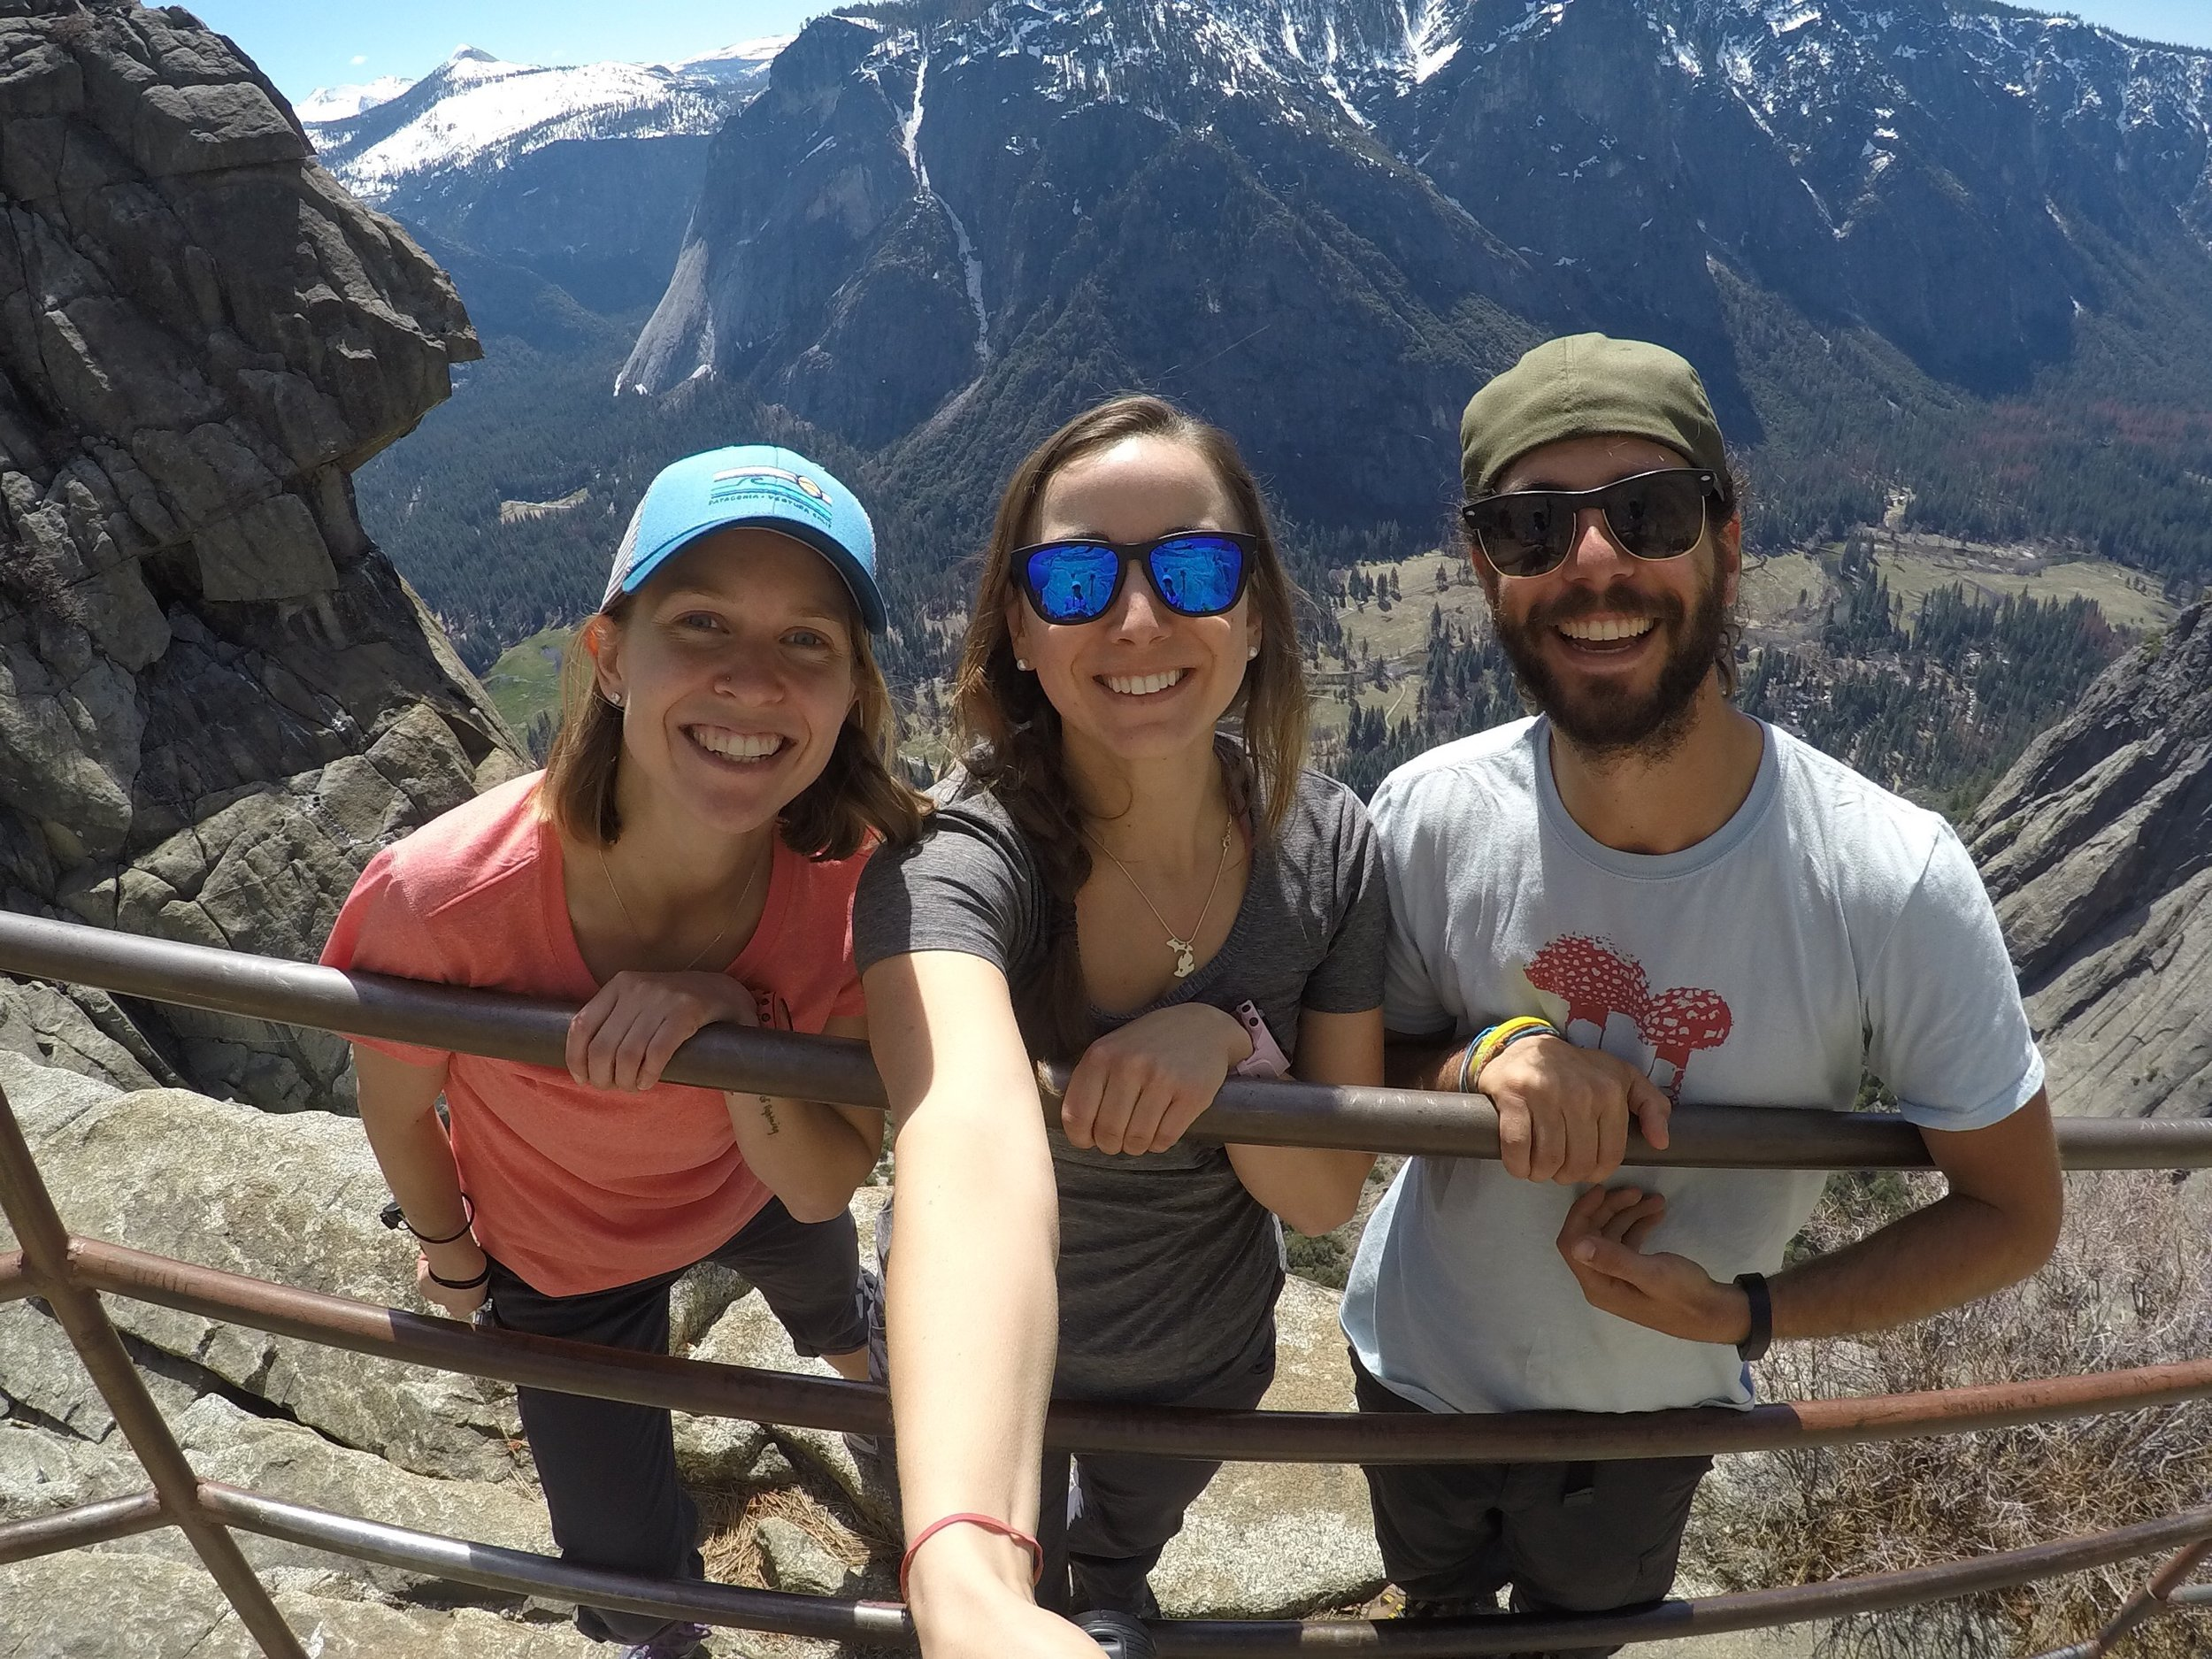 Hannah 1 , Hannah 2 (me), and Alex at the top of Upper Yosemite Falls